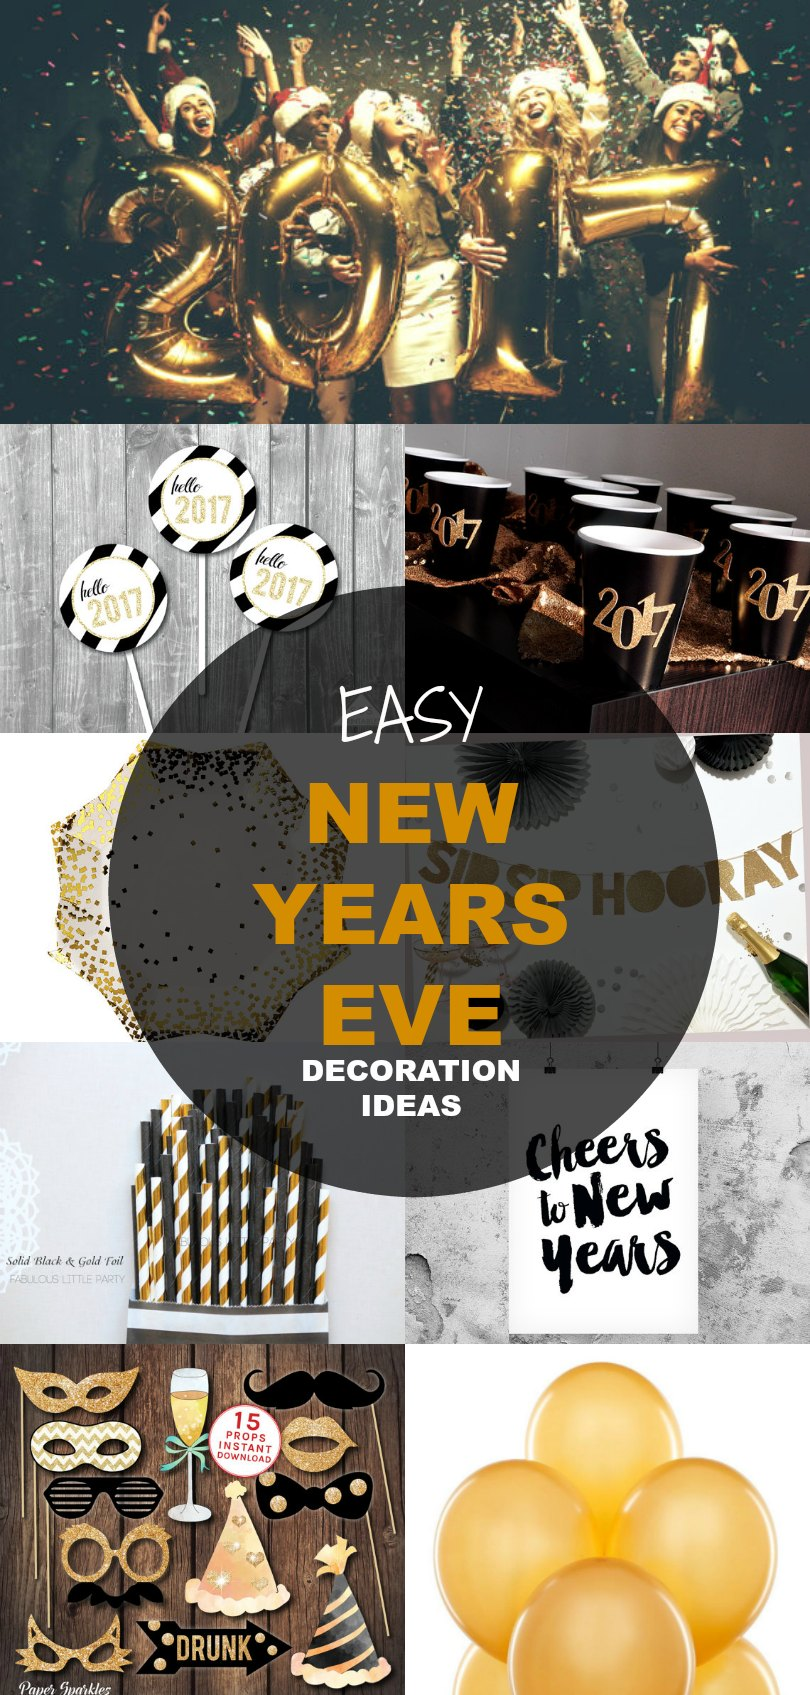 21 New Years Eve Decoration Ideas